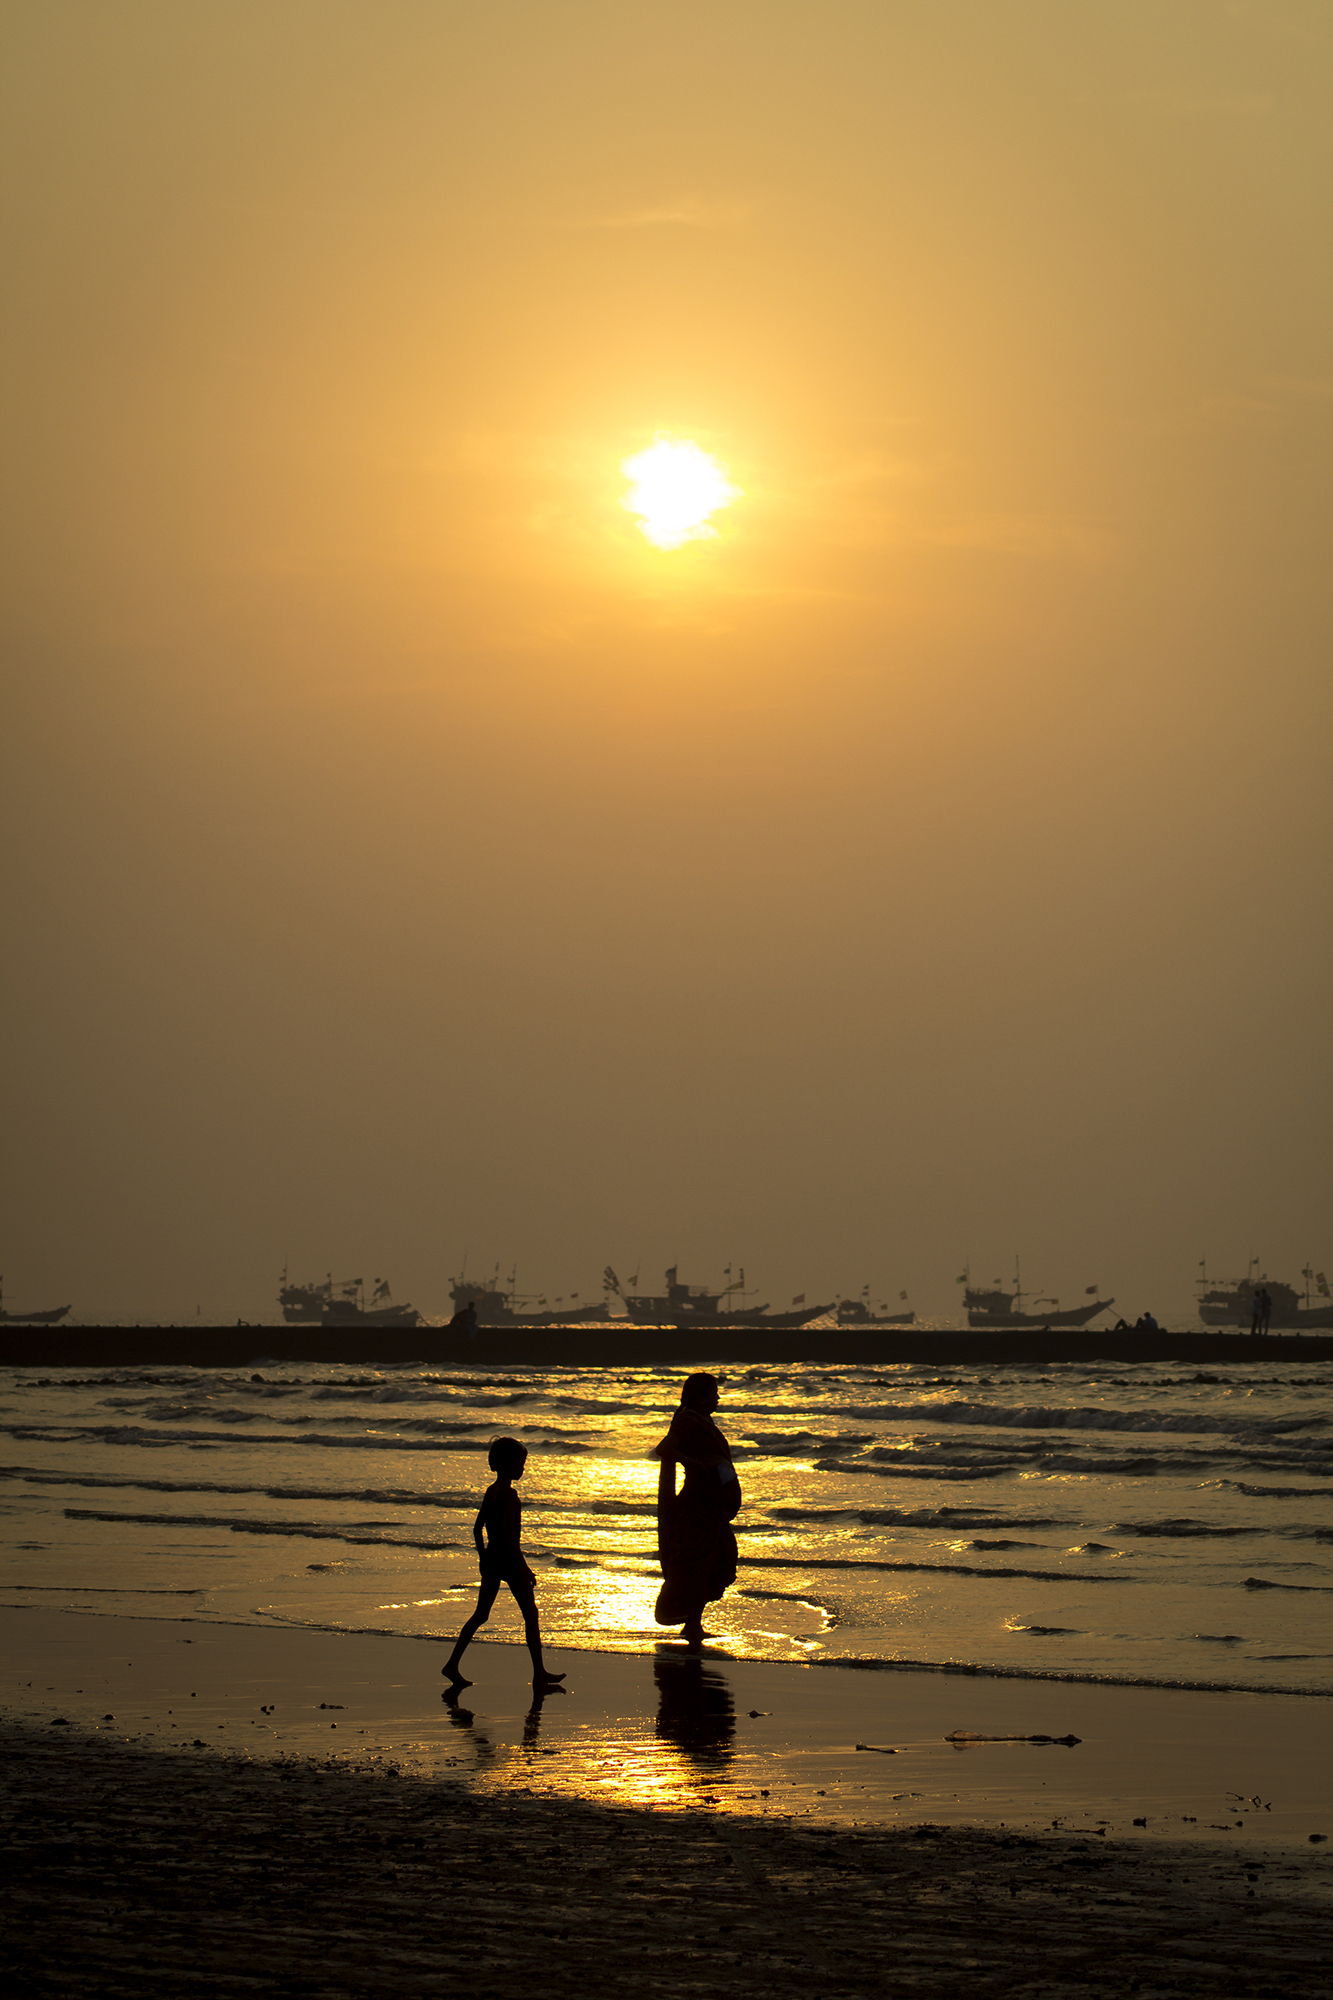 This image was taken at Gorai Beach - Mumbai. I was just roaming around and saw this kid with his mother opposite to the sun giving this nice silhouette effect.